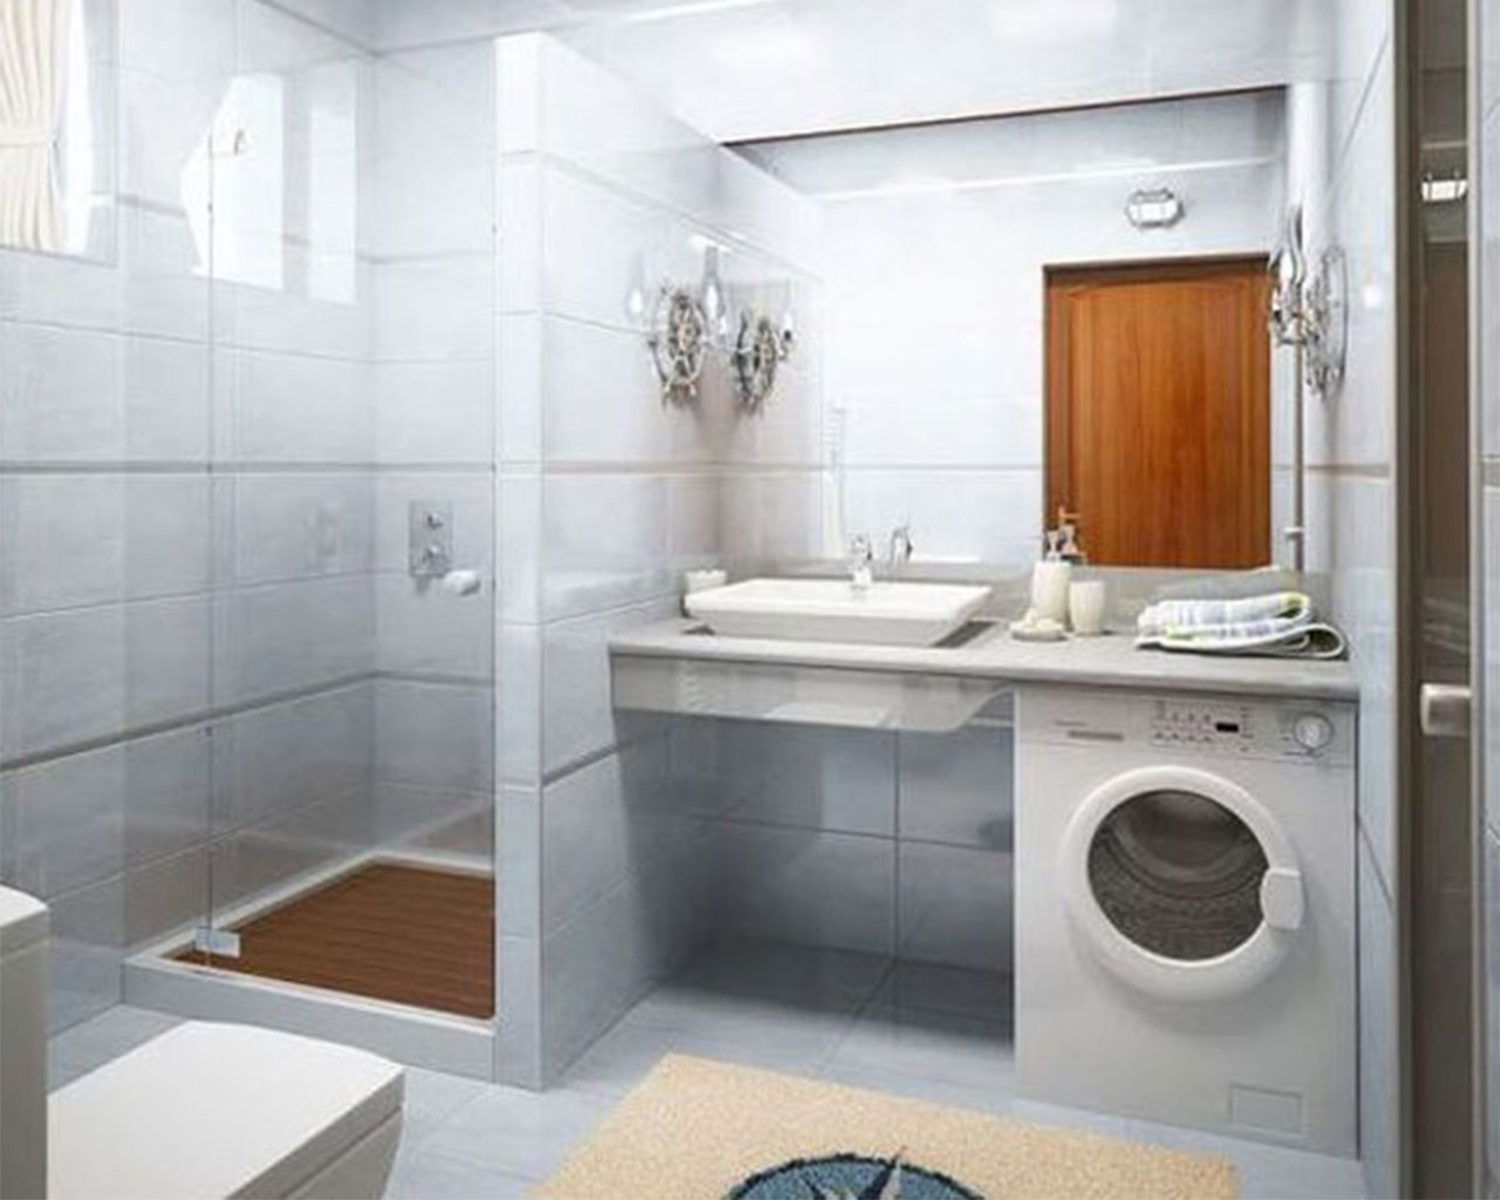 Simple bathroom design idea with washing machine id682 for Small bathroom designs with washing machine